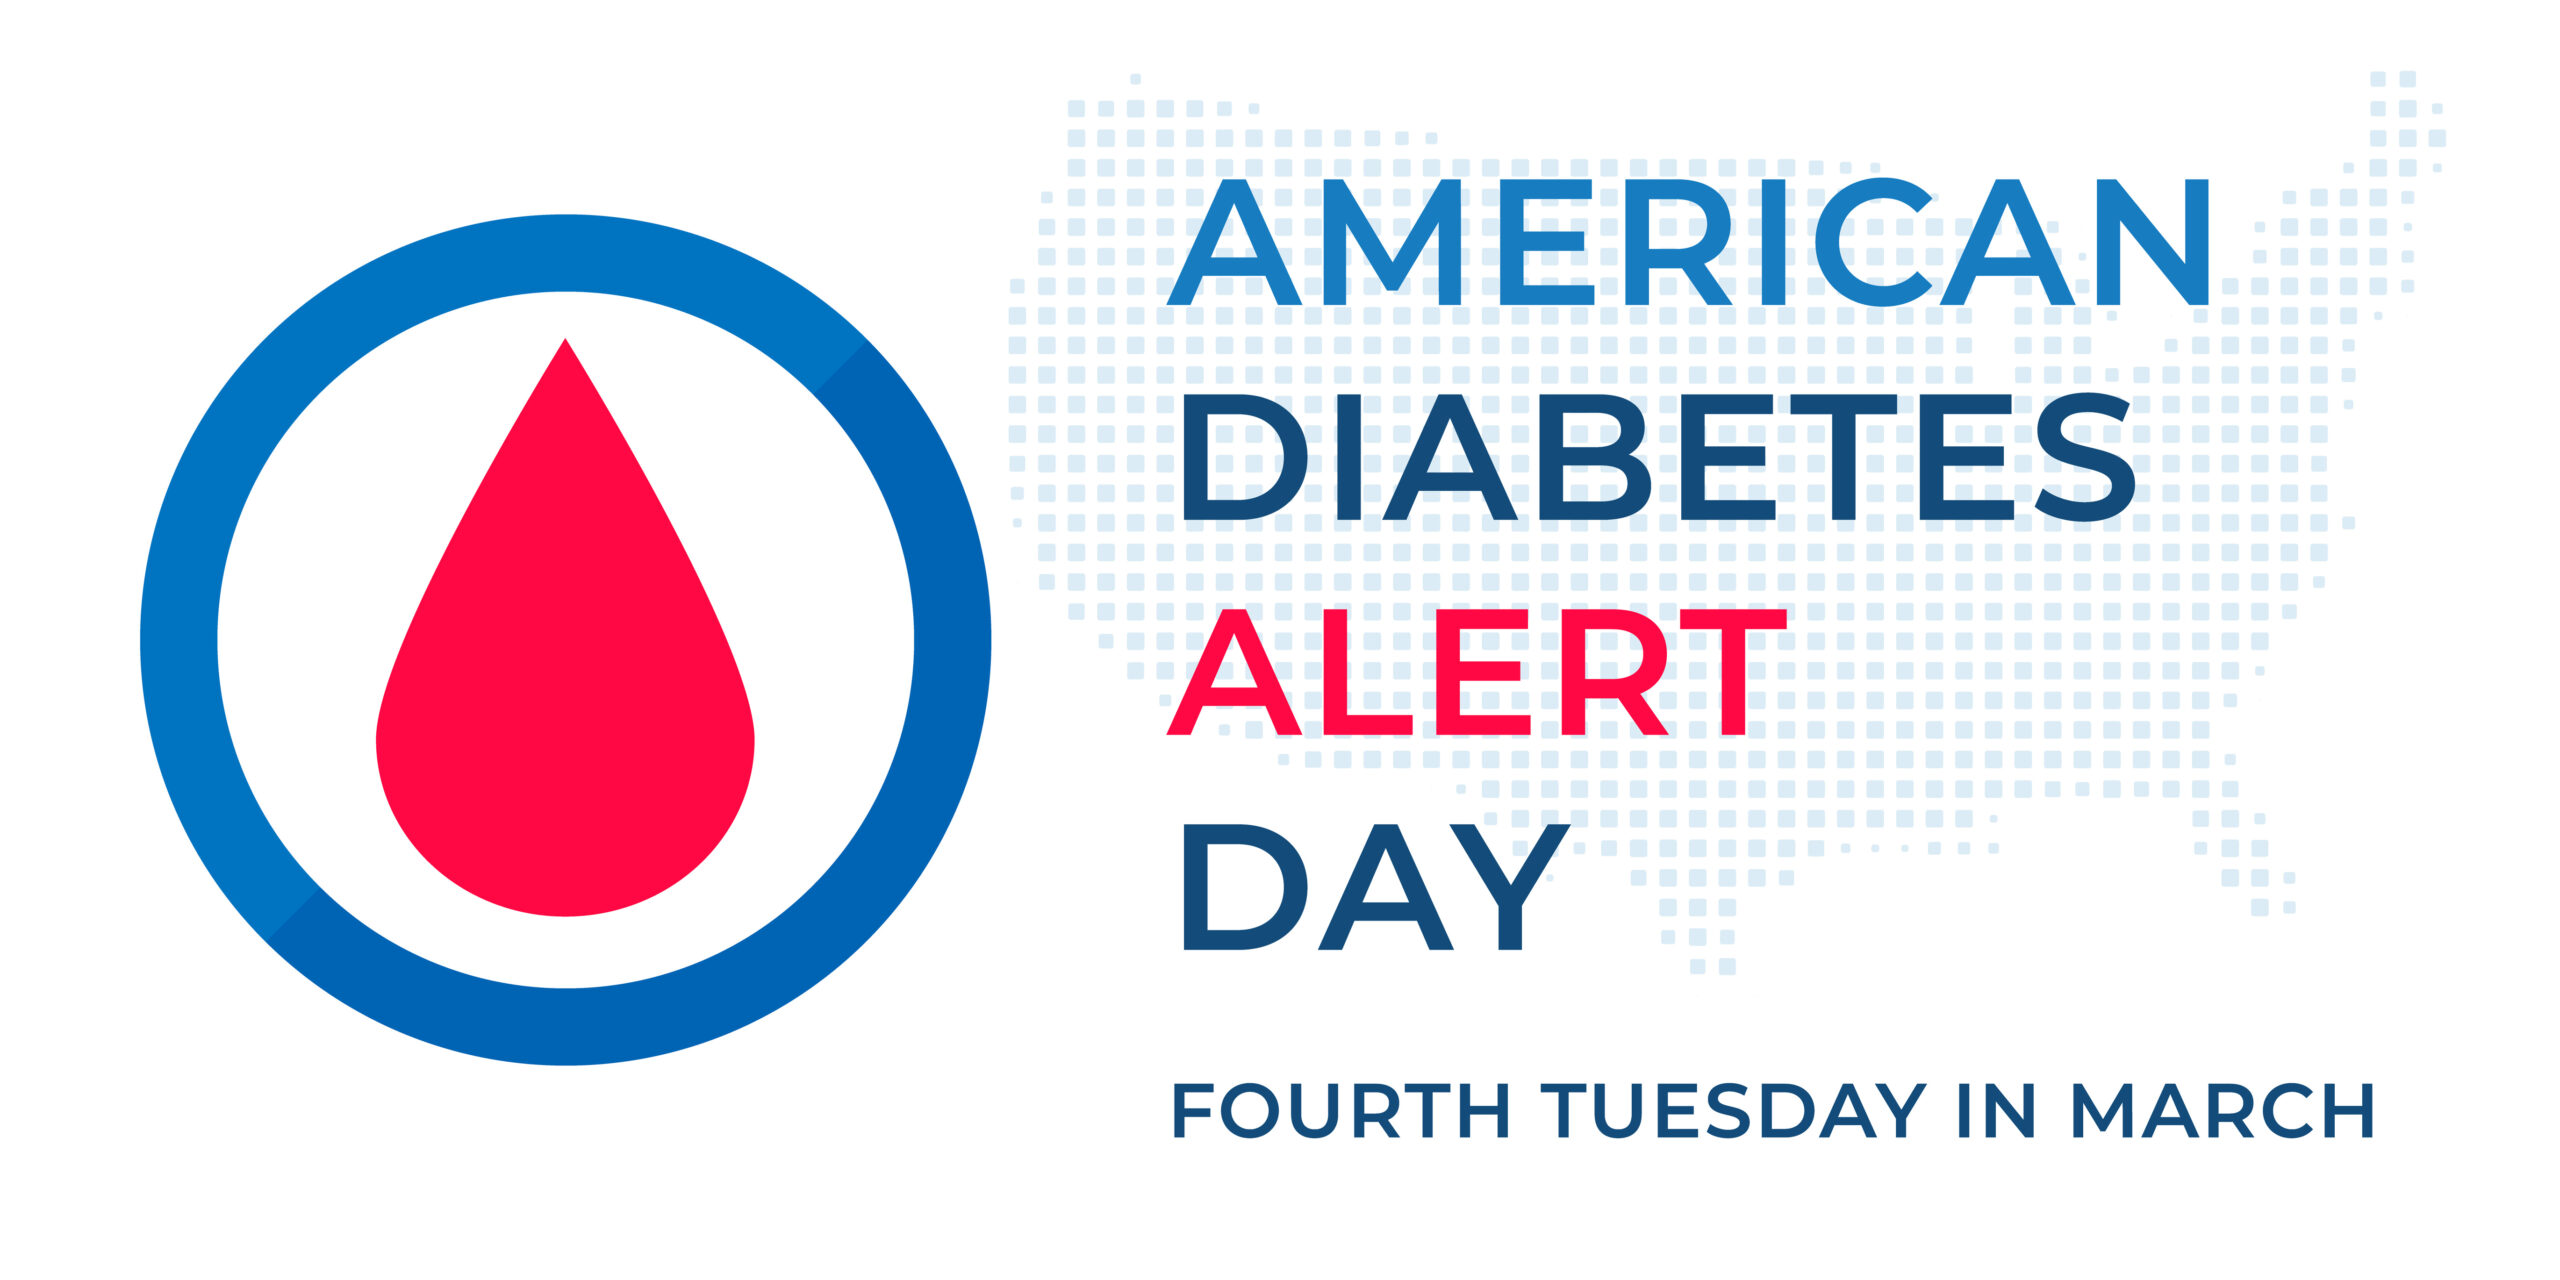 American Diabetes Alert Day graphic with diabetes symbol with a blue round frame.